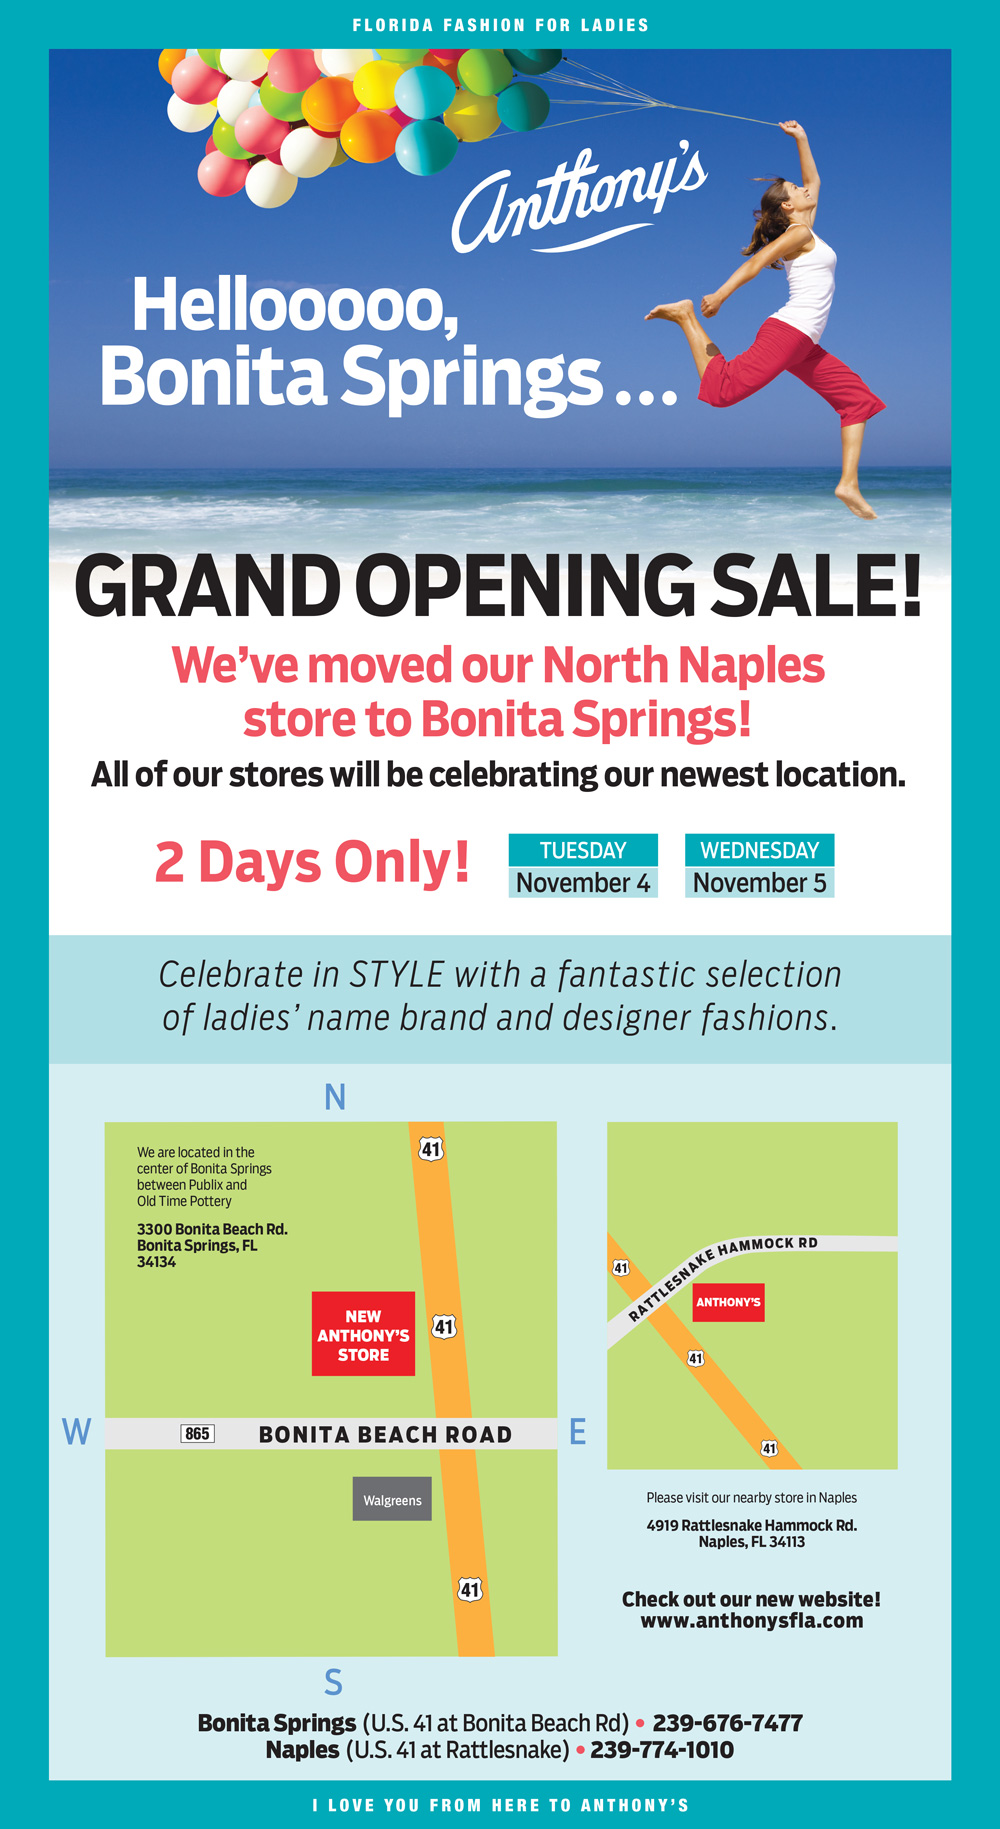 Grand-Opening-Double_Naples-Daily-News_11_04_left.jpg